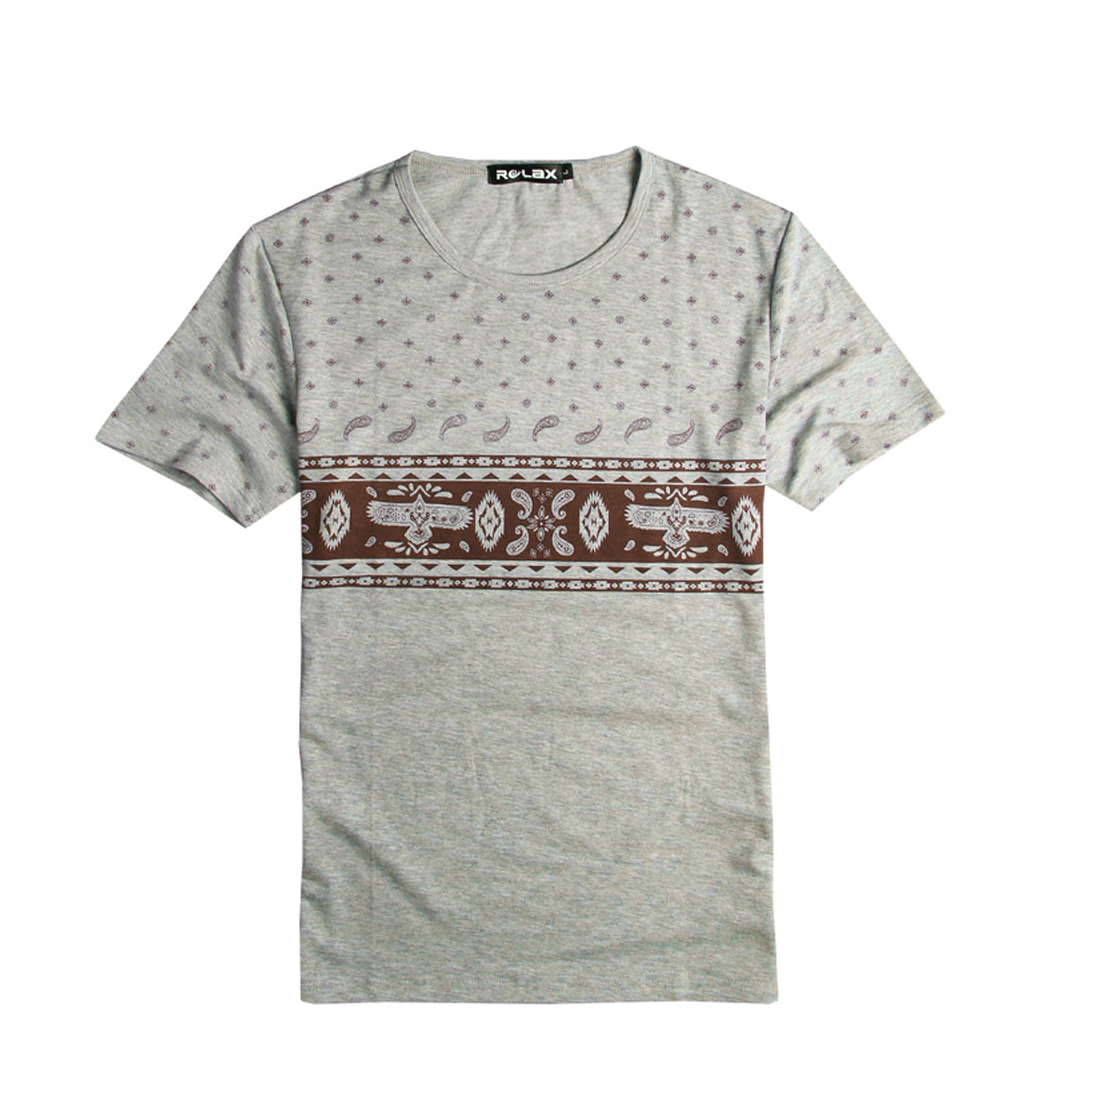 Man Short Sleeves Fashioanl Paisley Pattern T-Shirt Blouse Gray S